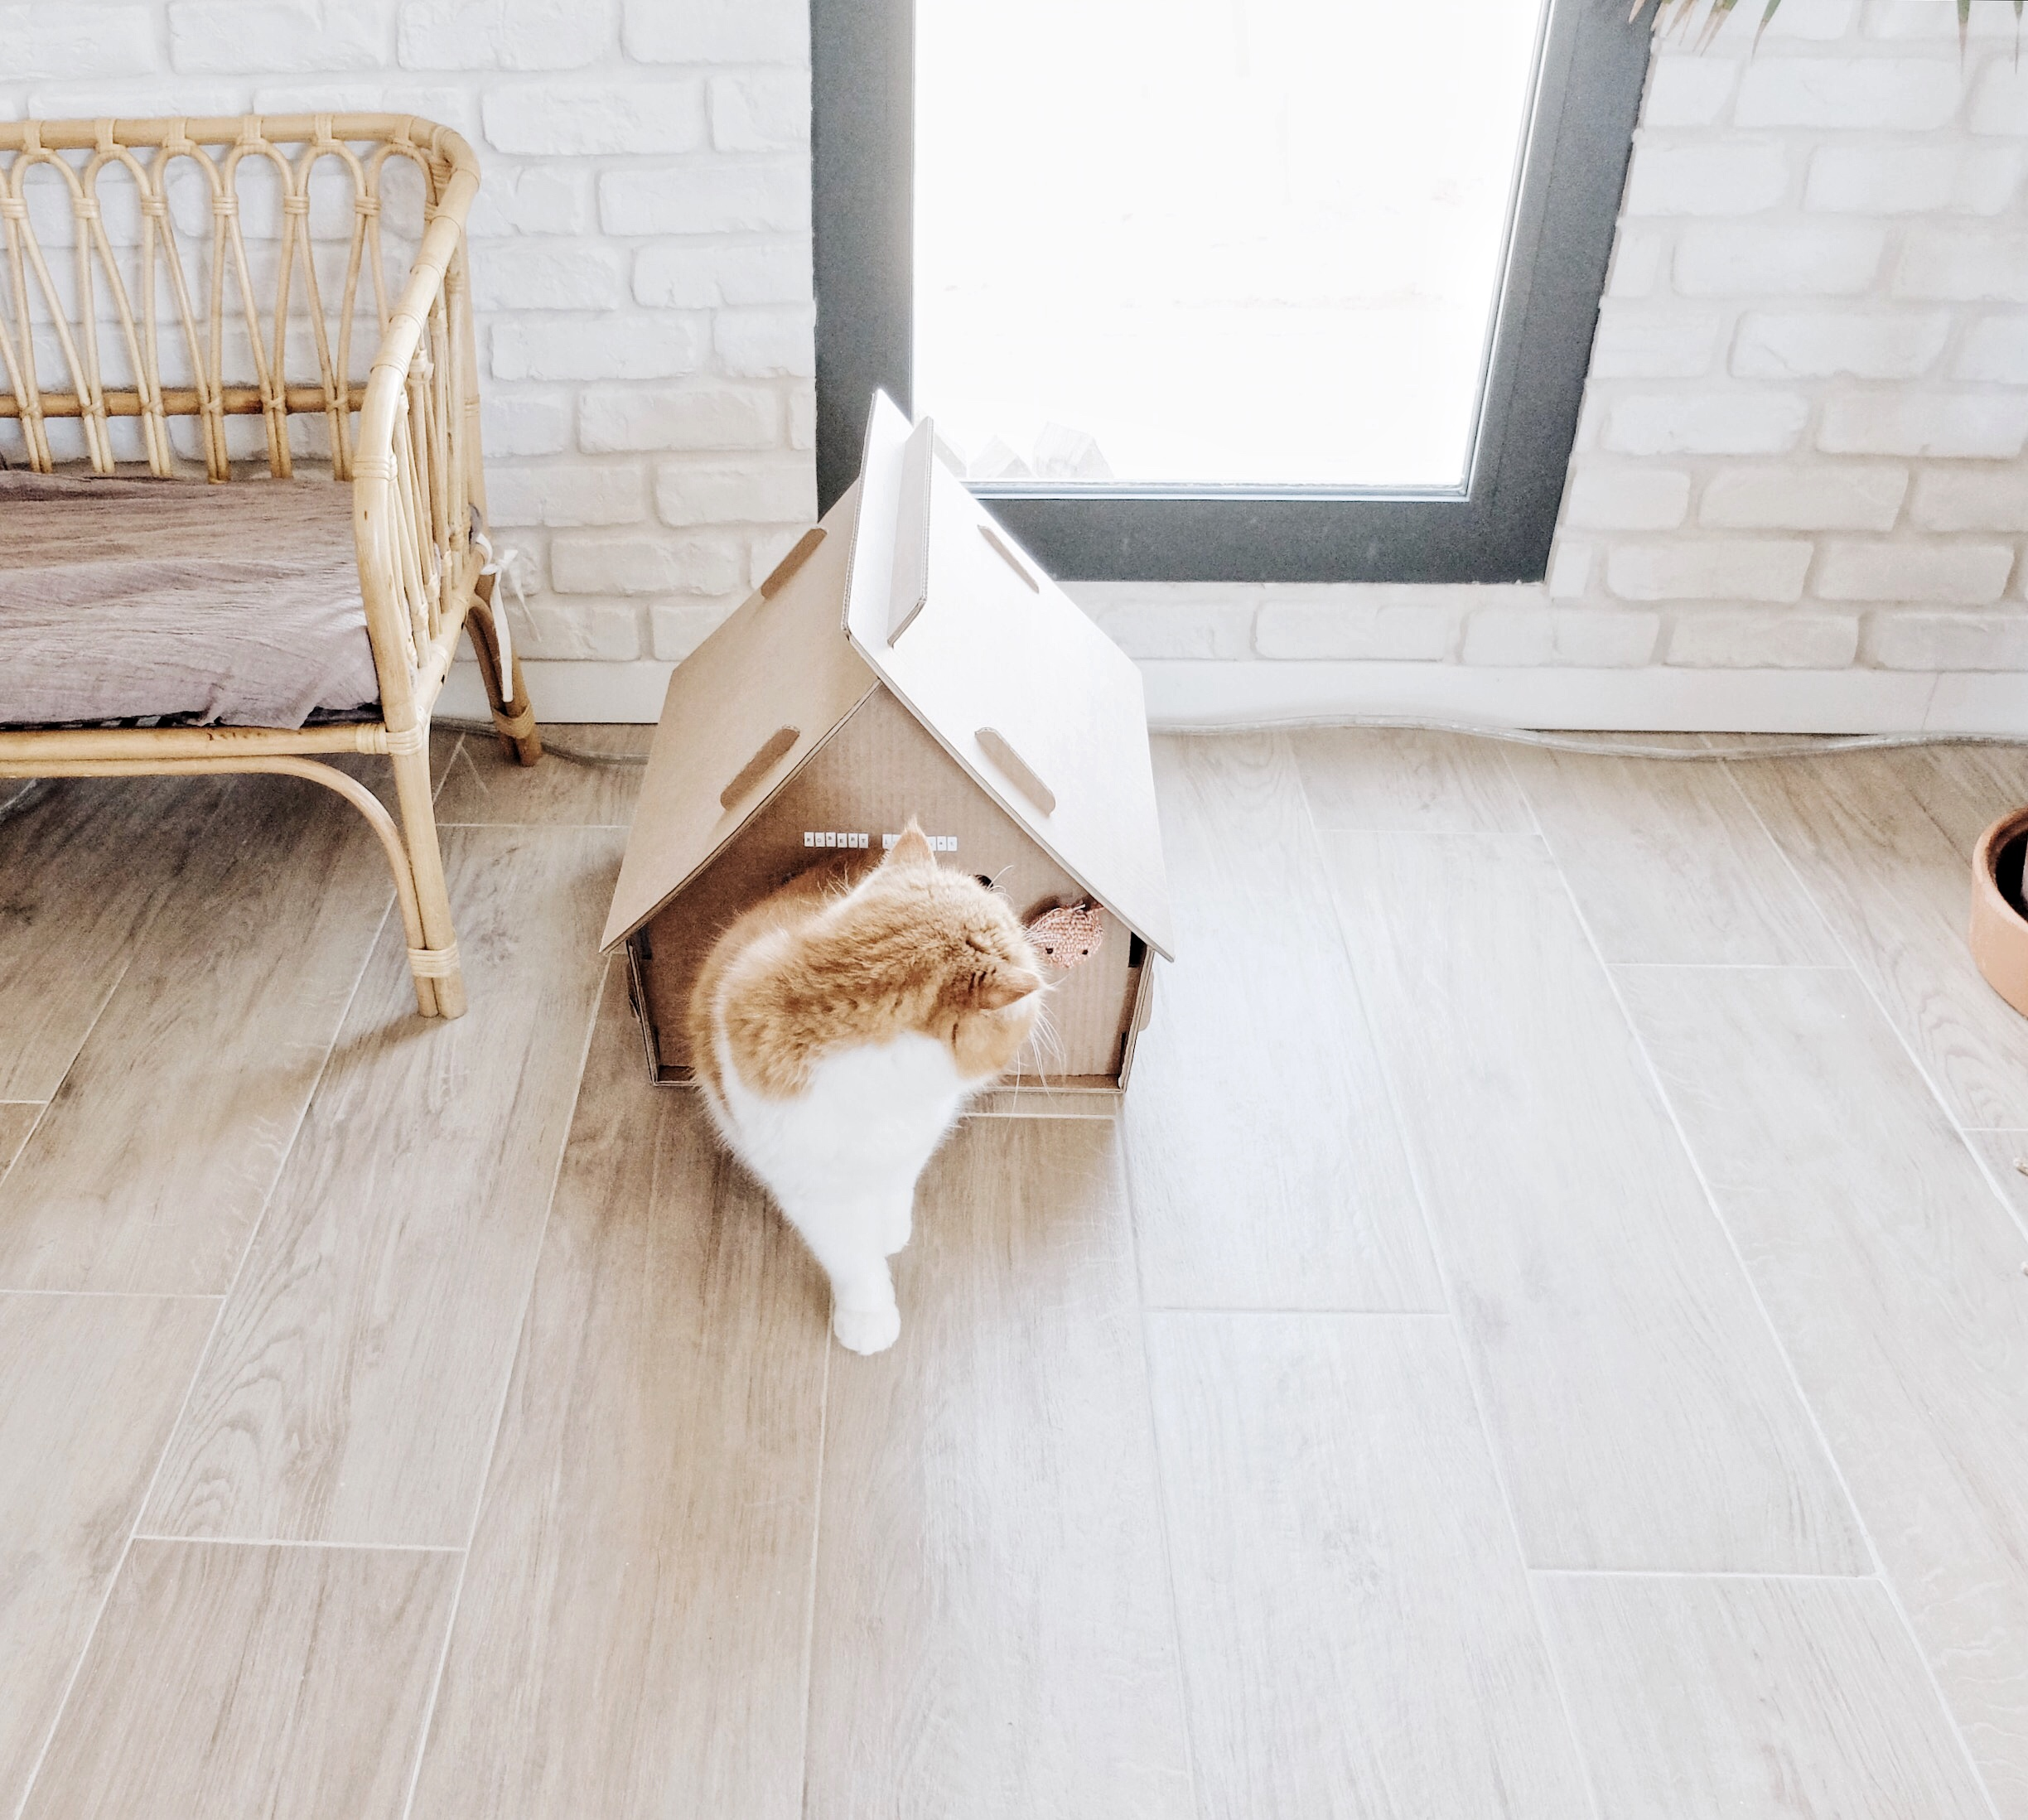 maison chat carton selfpackaging